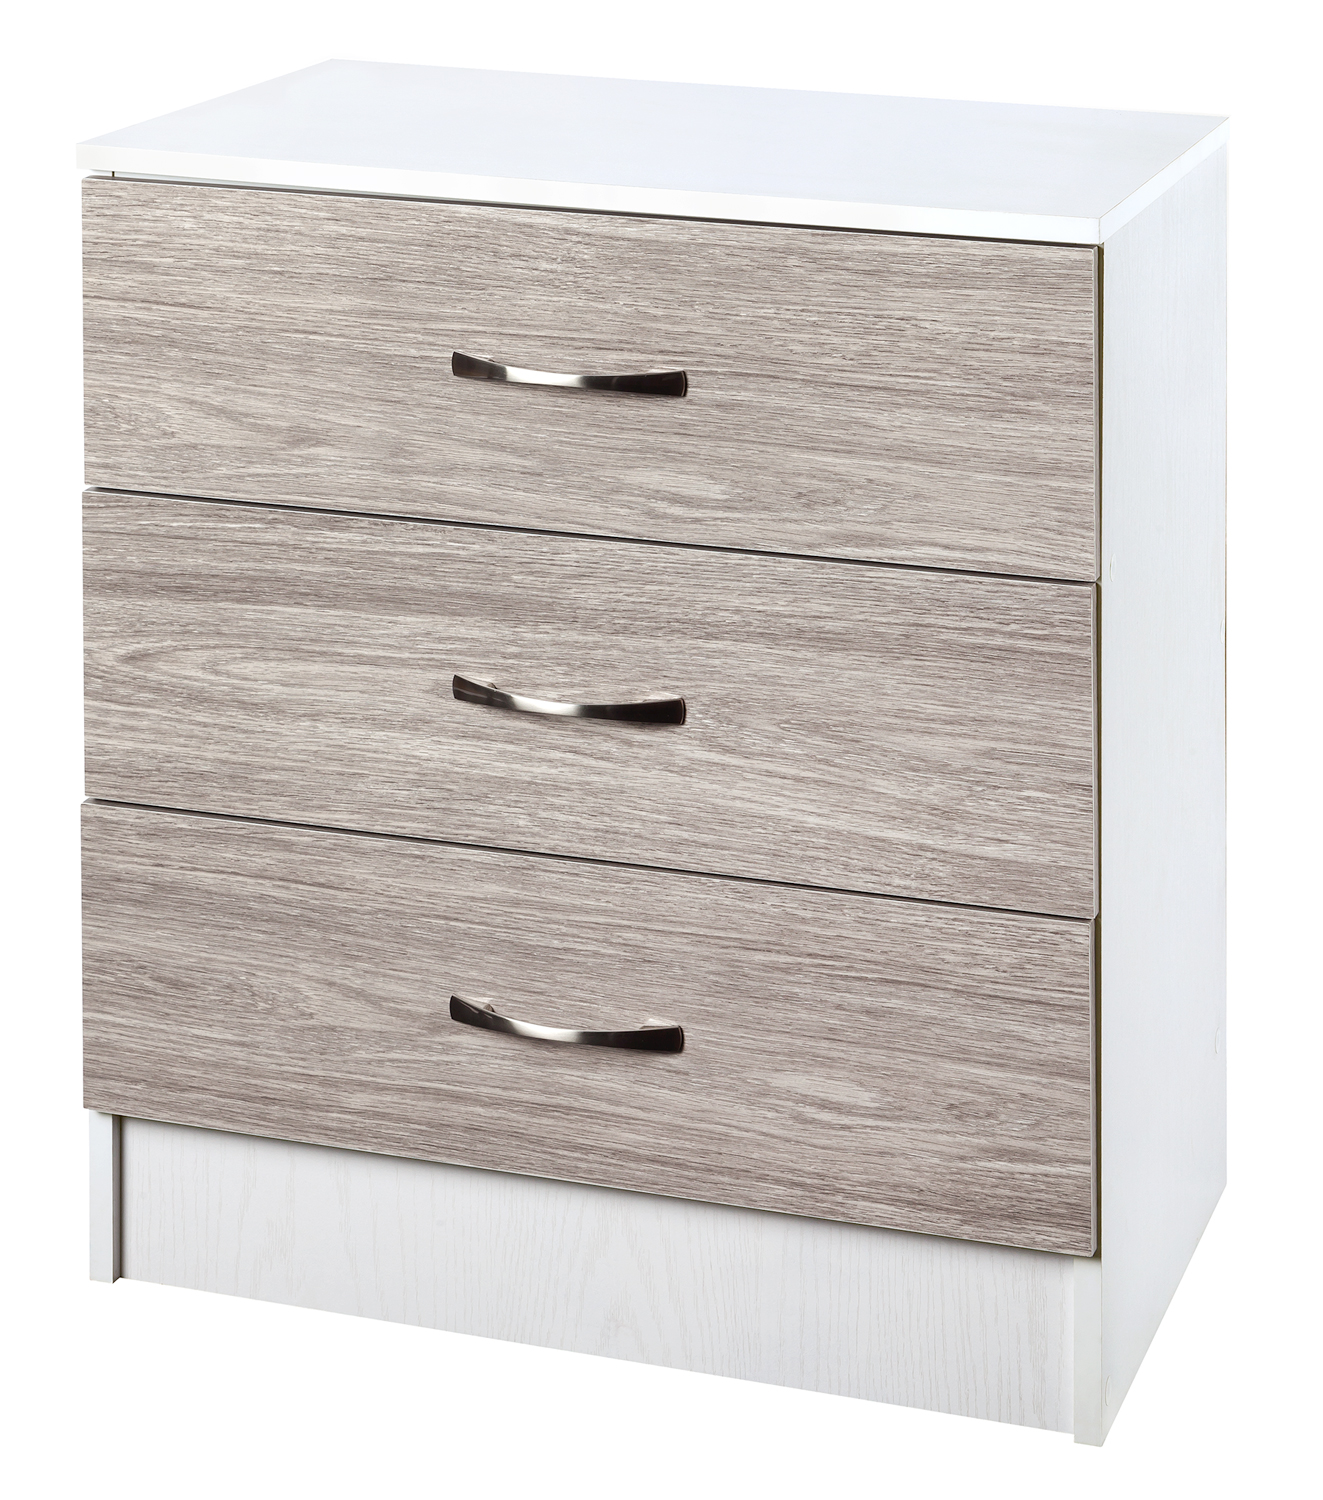 Picture of Marina Chest of 3 Drawers